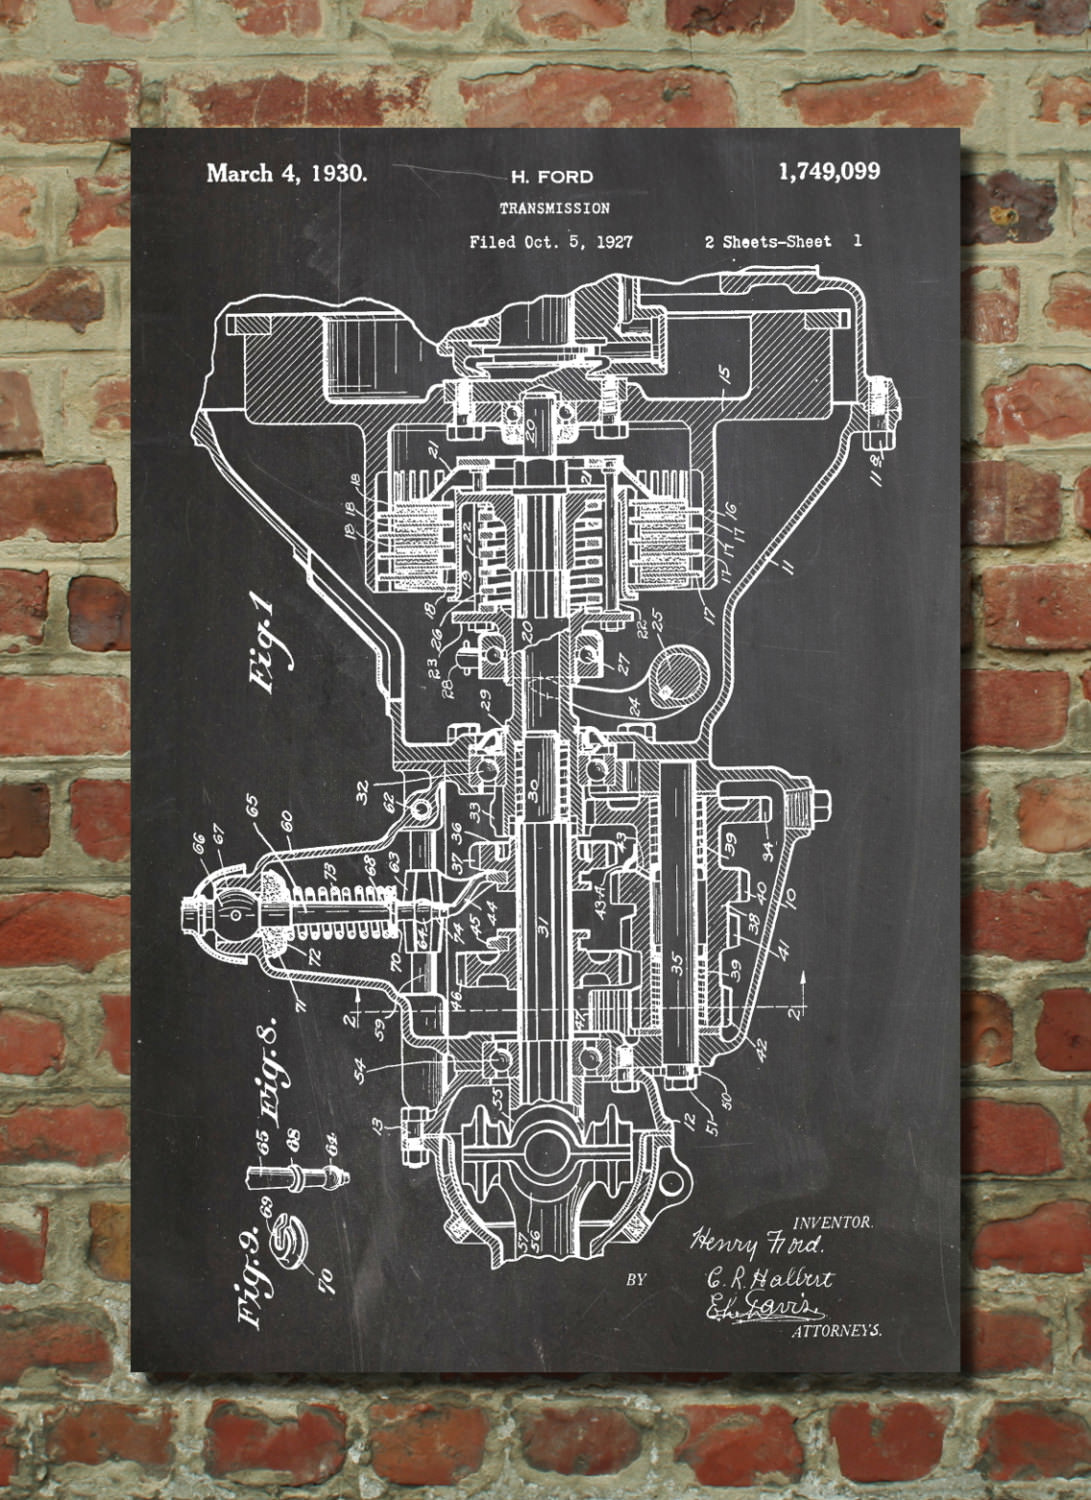 Henry Ford Transmission Patent Poster